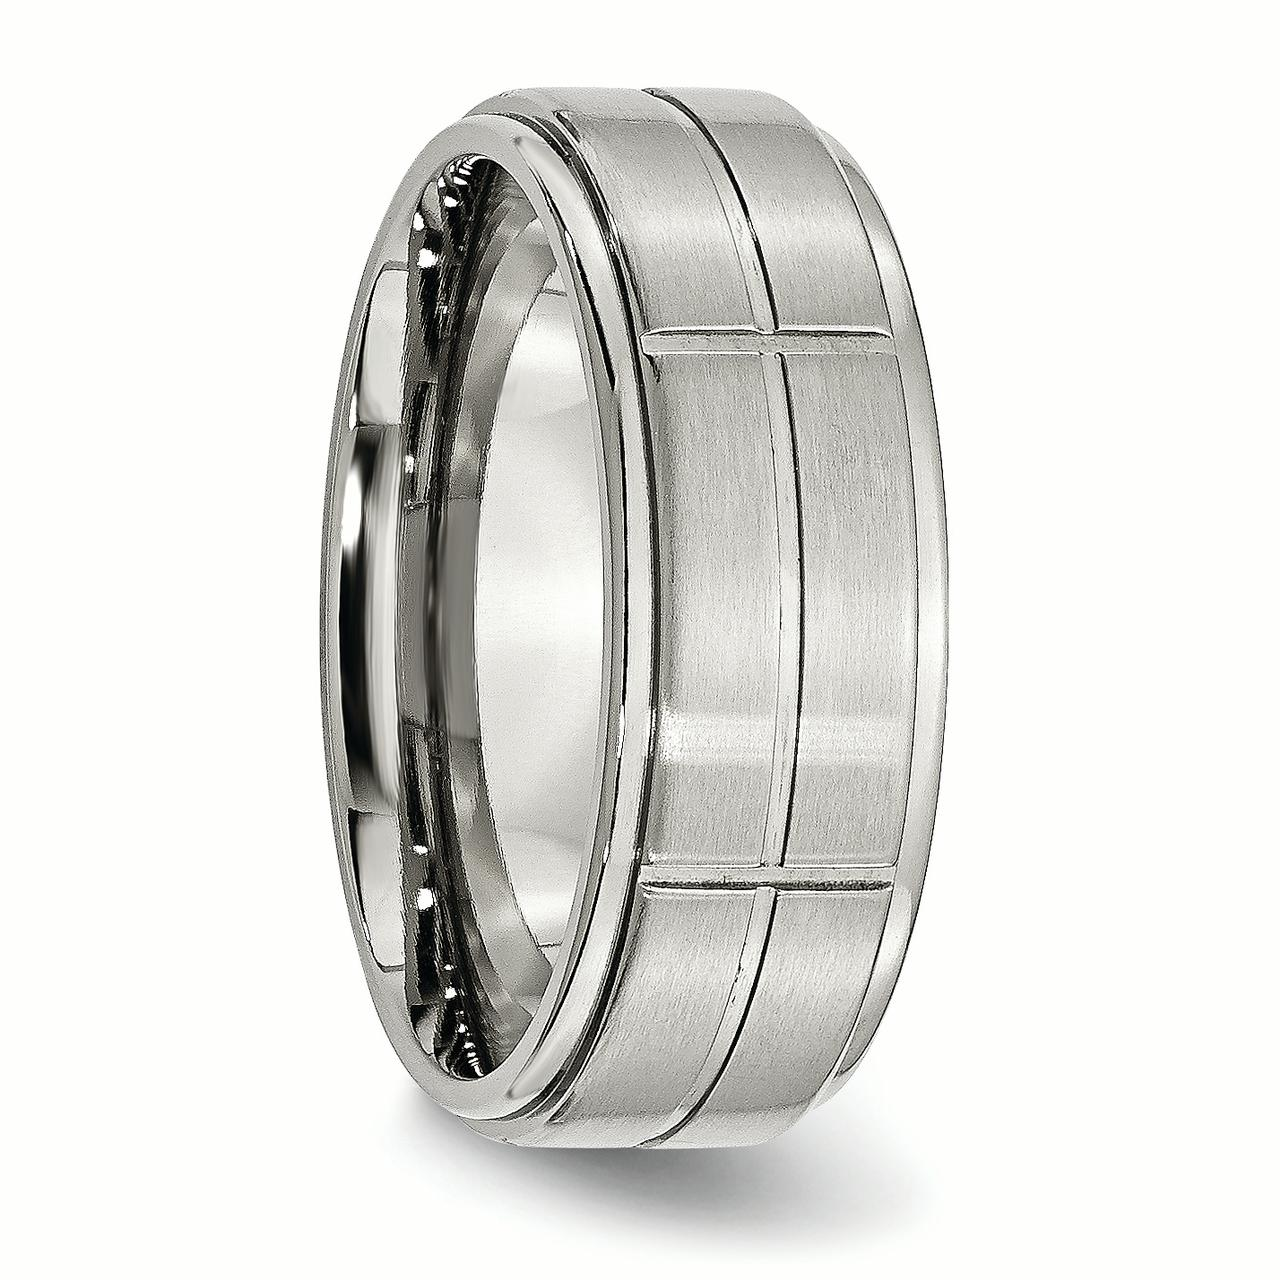 Stainless Steel Grooved 8mm Brushed/ Ridged Edge Wedding Ring Band Size 8.50 Fashion Jewelry Gifts For Women For Her - image 4 de 10